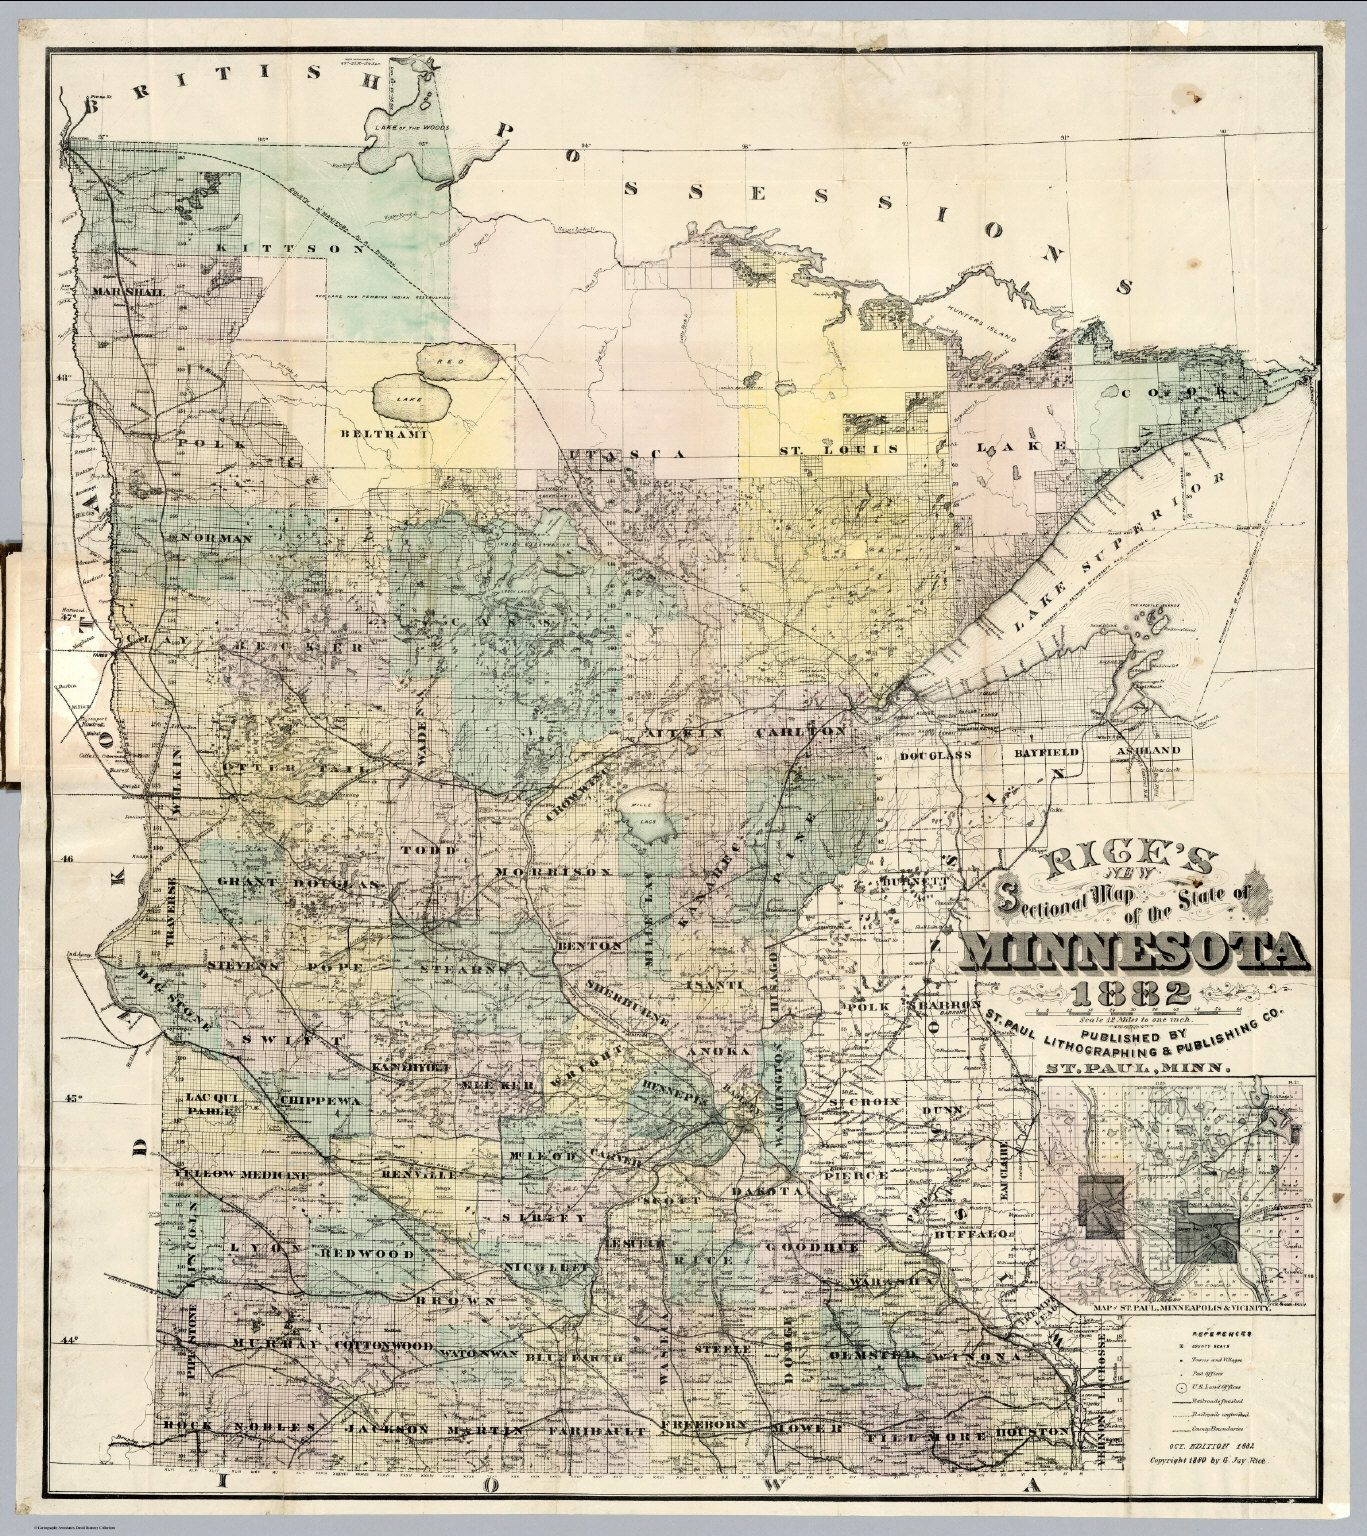 Map of the State of Minnesota David Rumsey Historical Map Collection